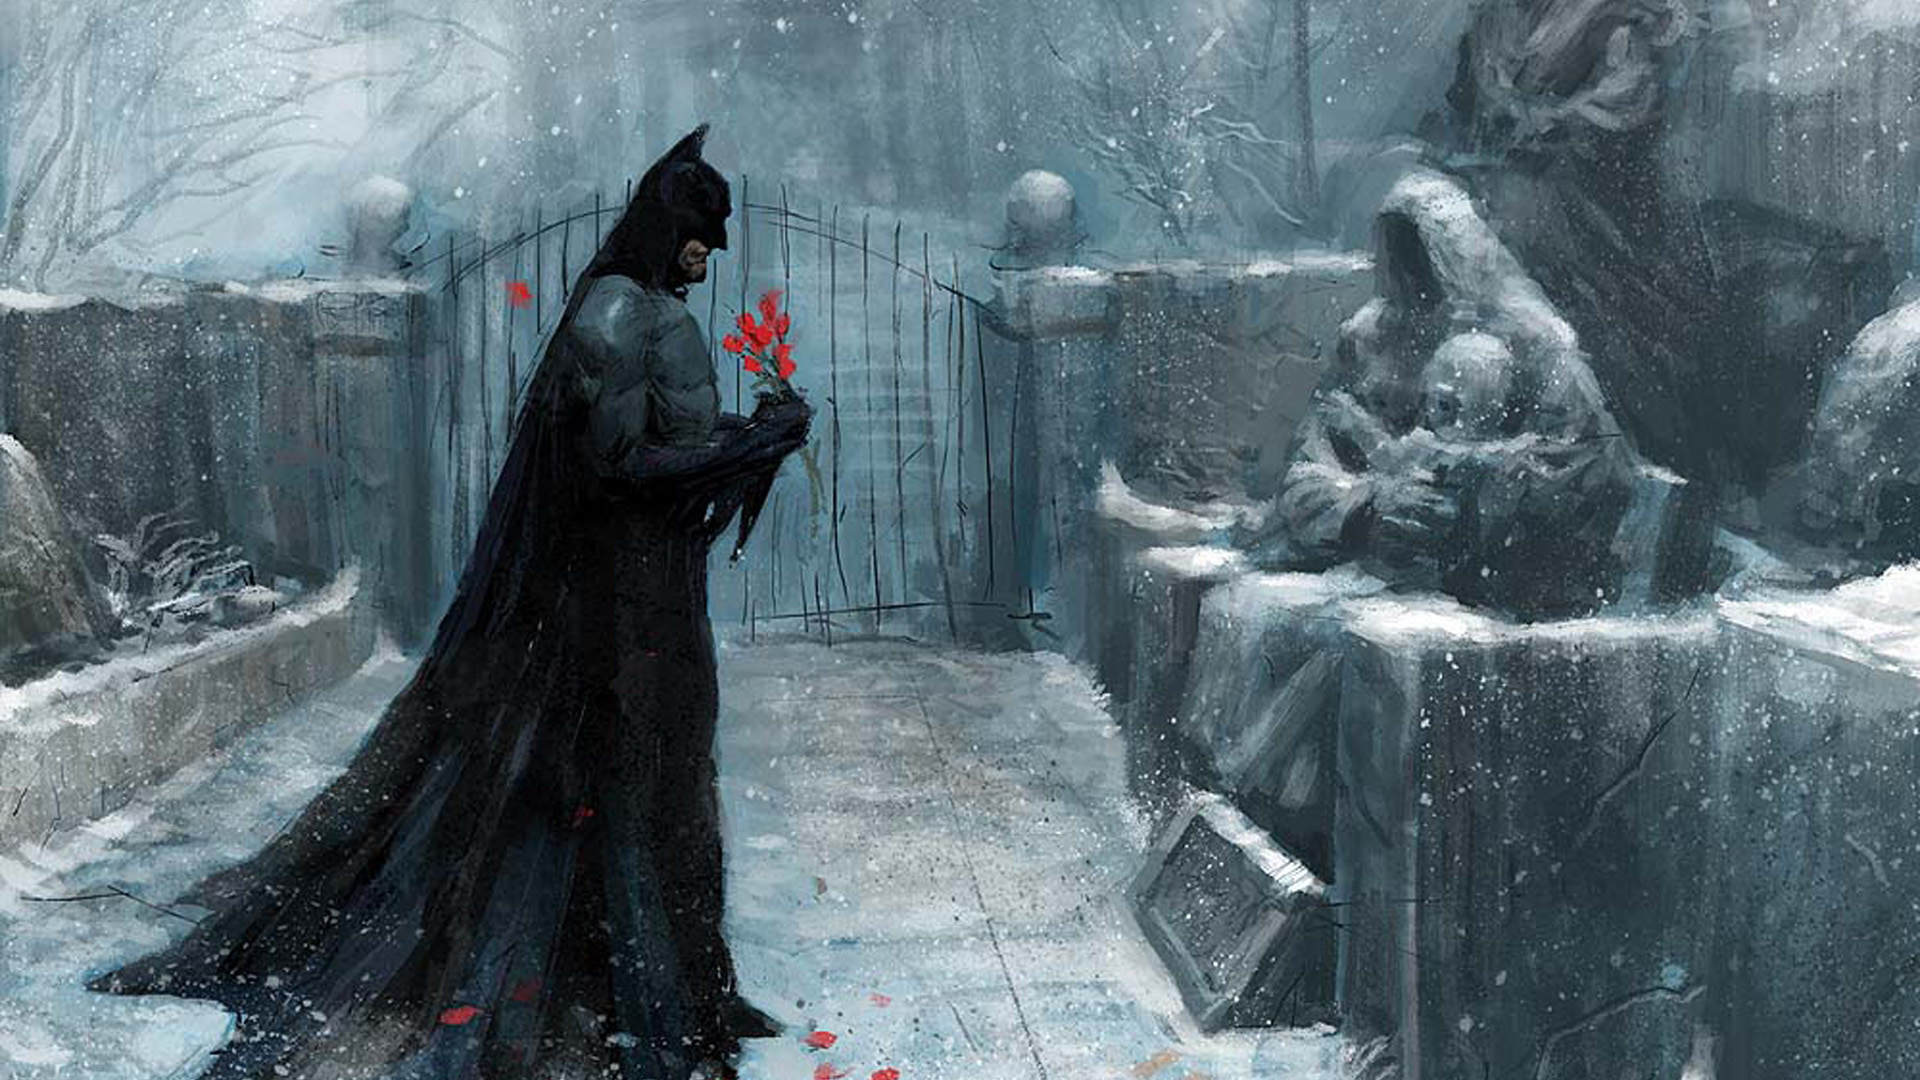 batman screensavers cemetary wallpaper wallpapers cemetarybatman 1920x1080